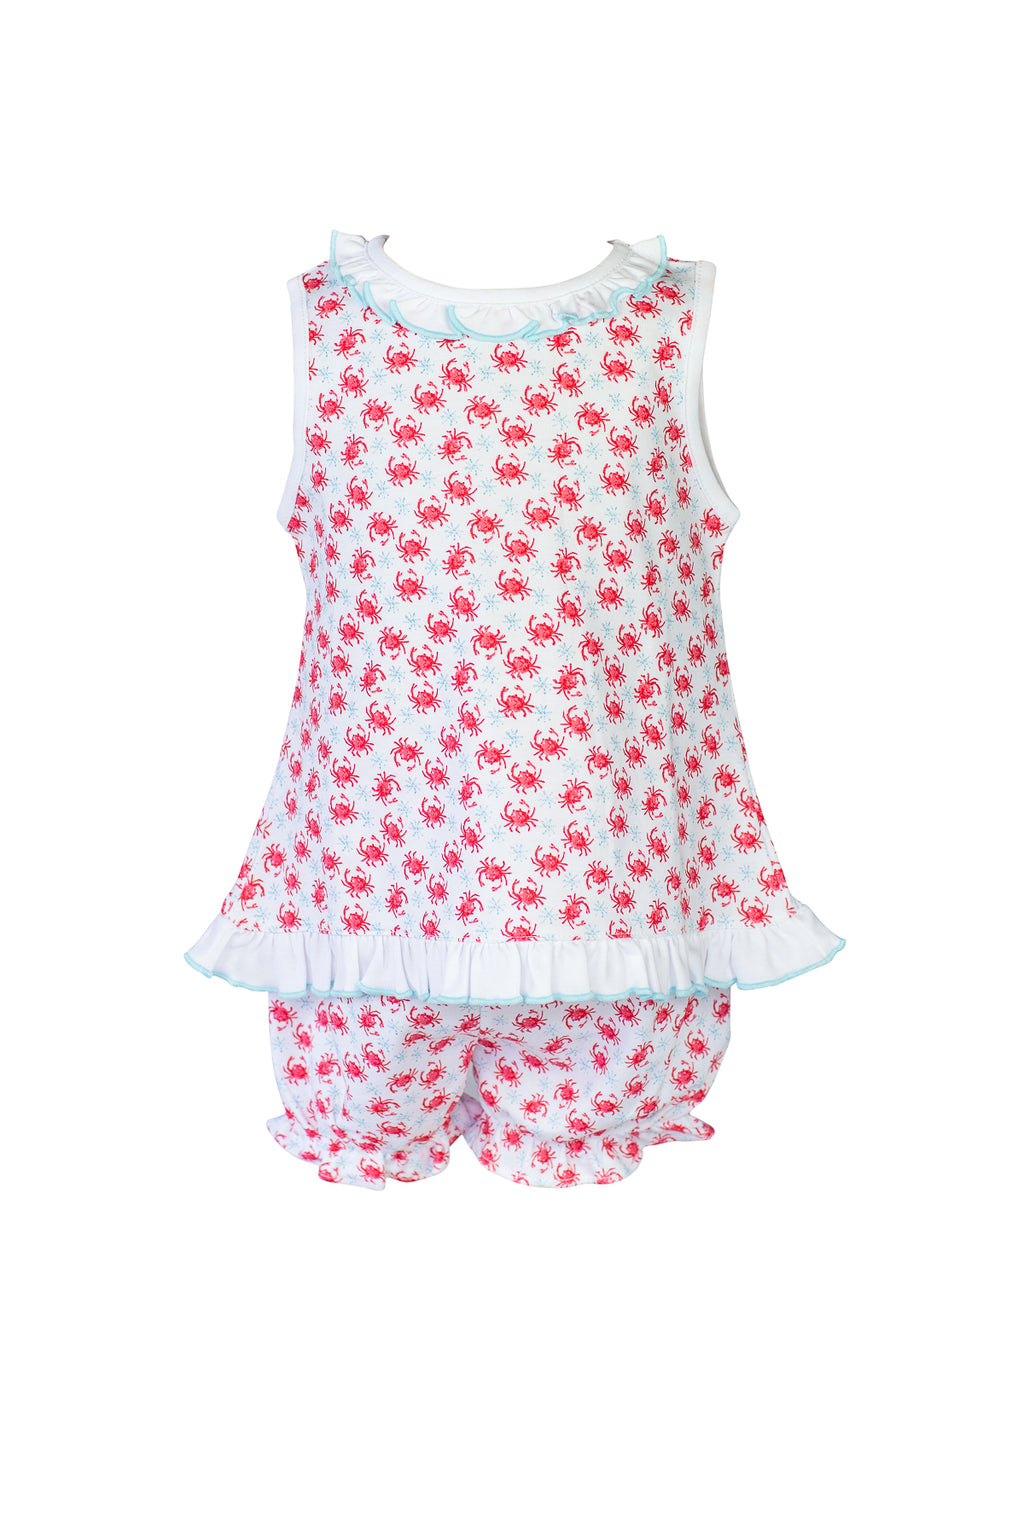 Pre-Order Crab - Girl Ruffle Sleeveless Bloomer Set - Born Childrens Boutique